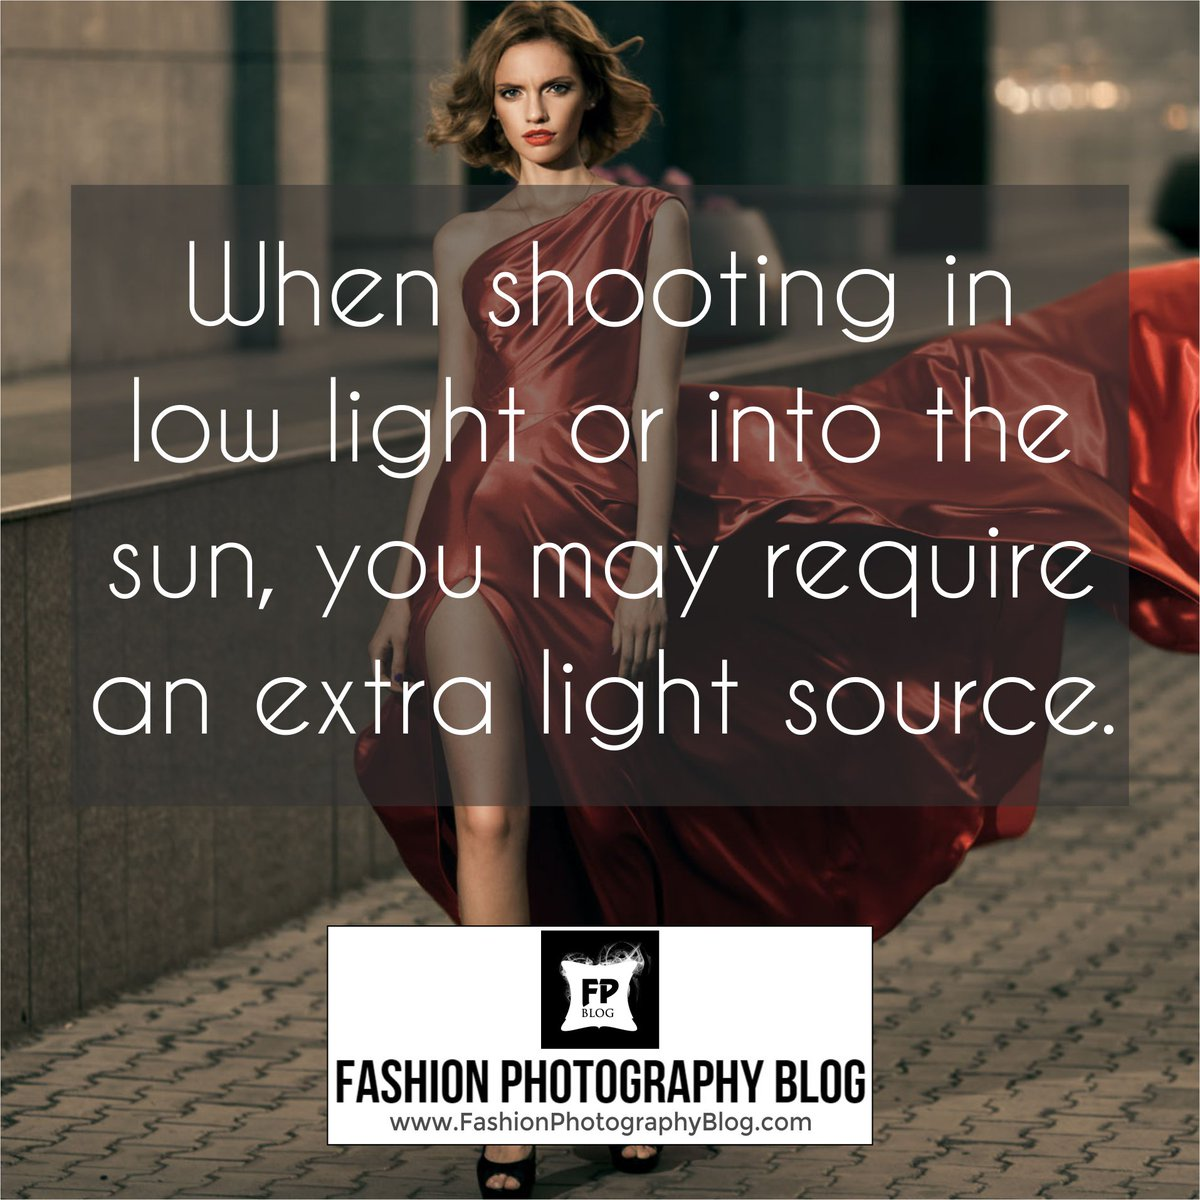 When shooting in low light you need an extra light source. More #photographytips at https://t.co/6VRubwJmTn Pls RT https://t.co/v7WPA7uL76